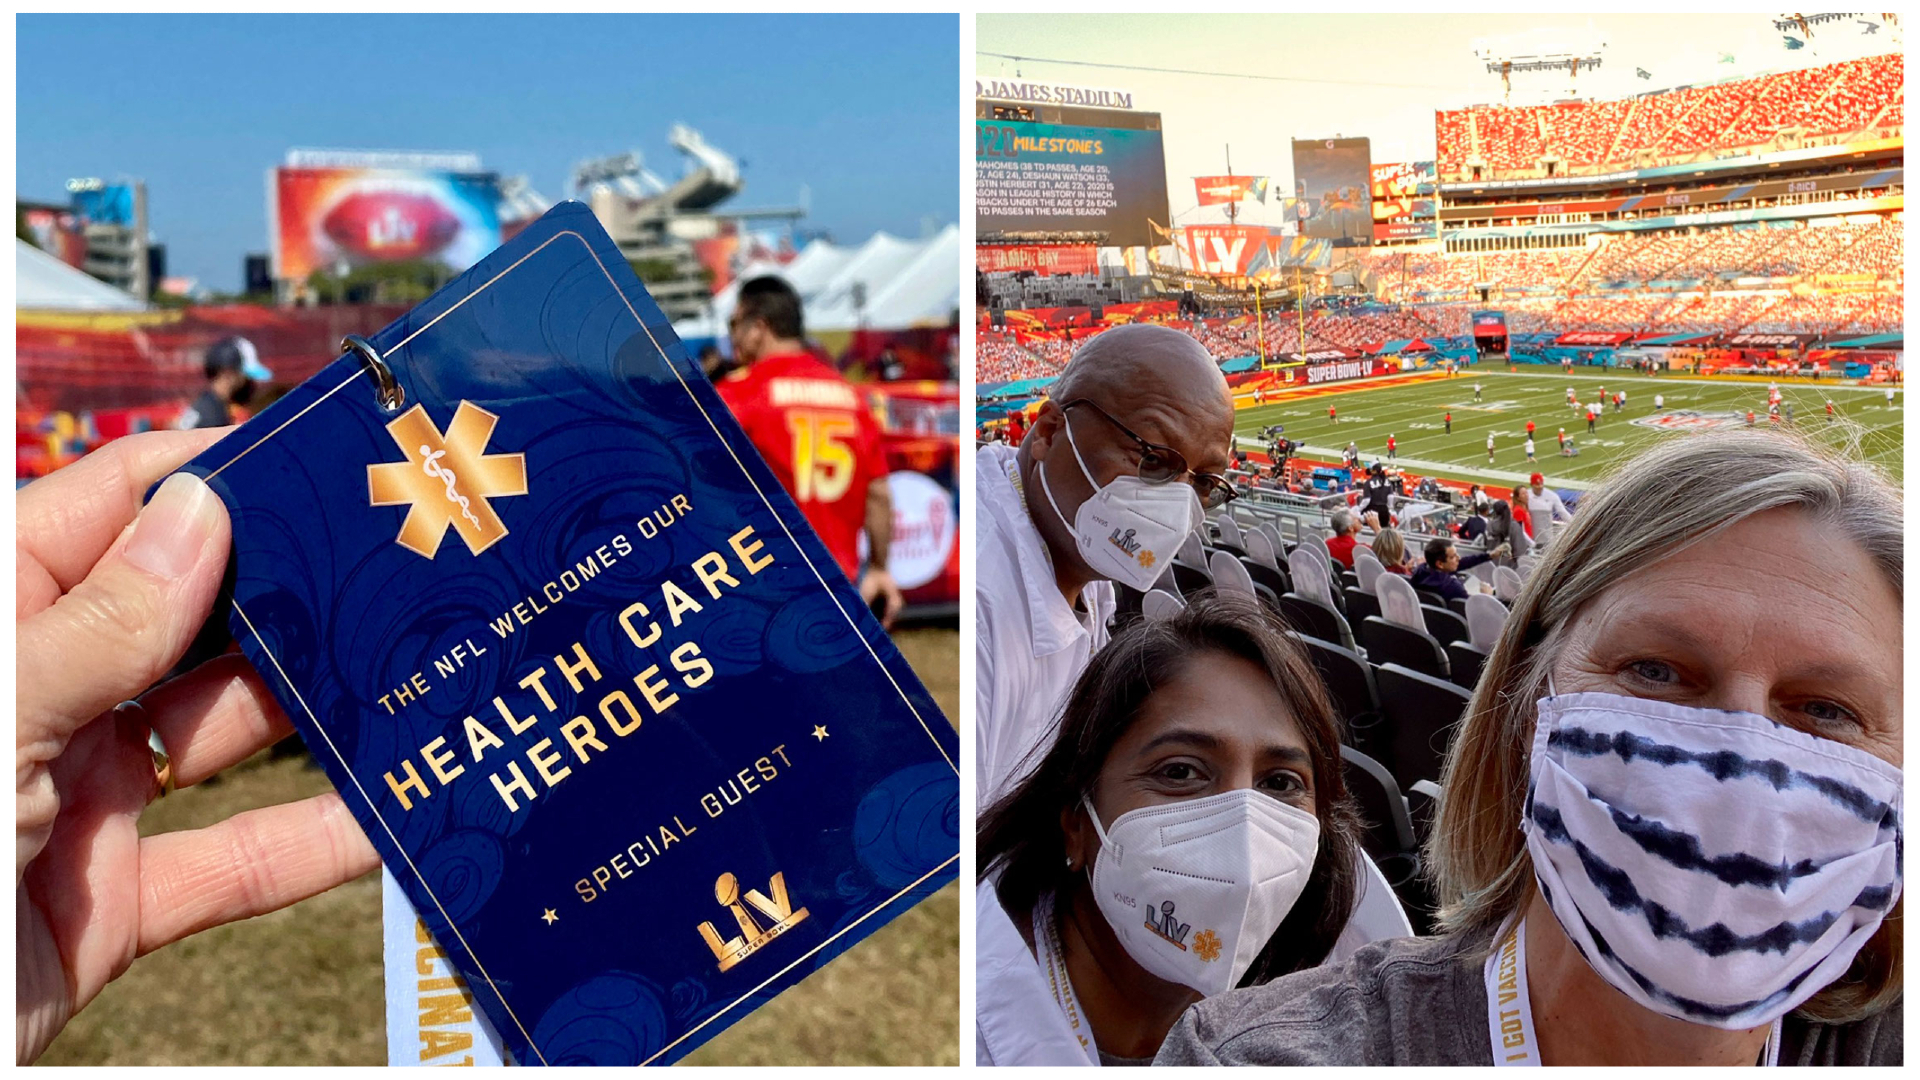 As healthcare workers continue to battle the COVID-19 pandemic, four well-deserving Atrium Health teammates will be recognized for their service and sacrifice with a trip to Super Bowl LV in Tampa, Fla.